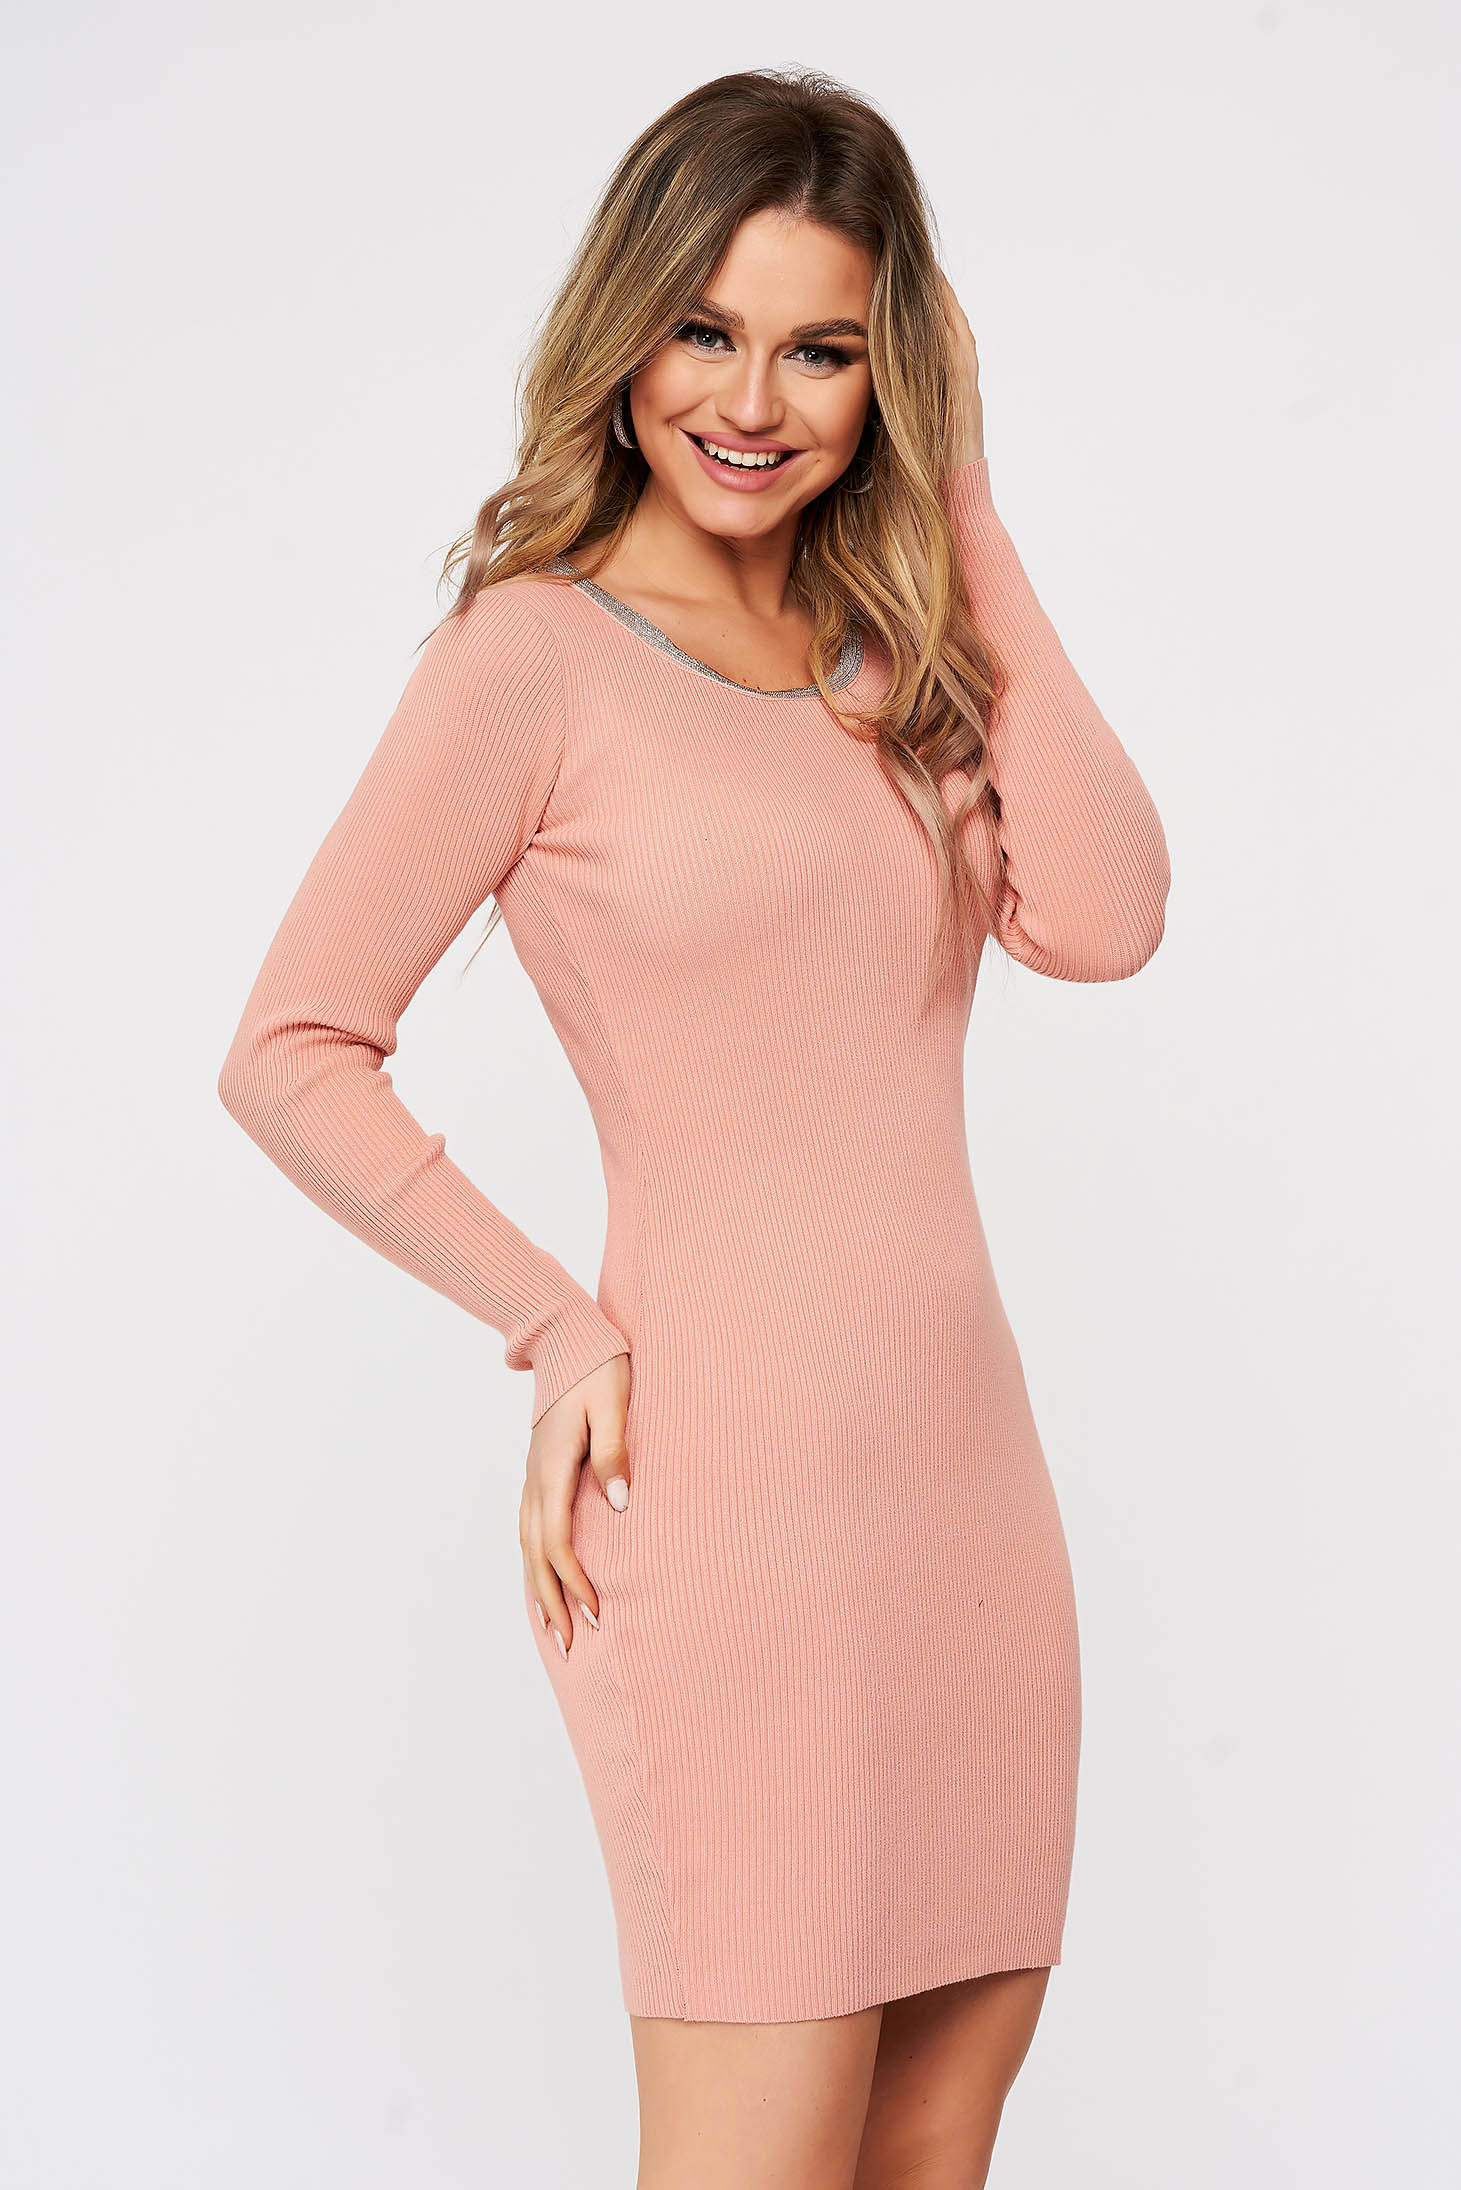 Pink dress from elastic fabric from striped fabric knitted with metal accessories neckline